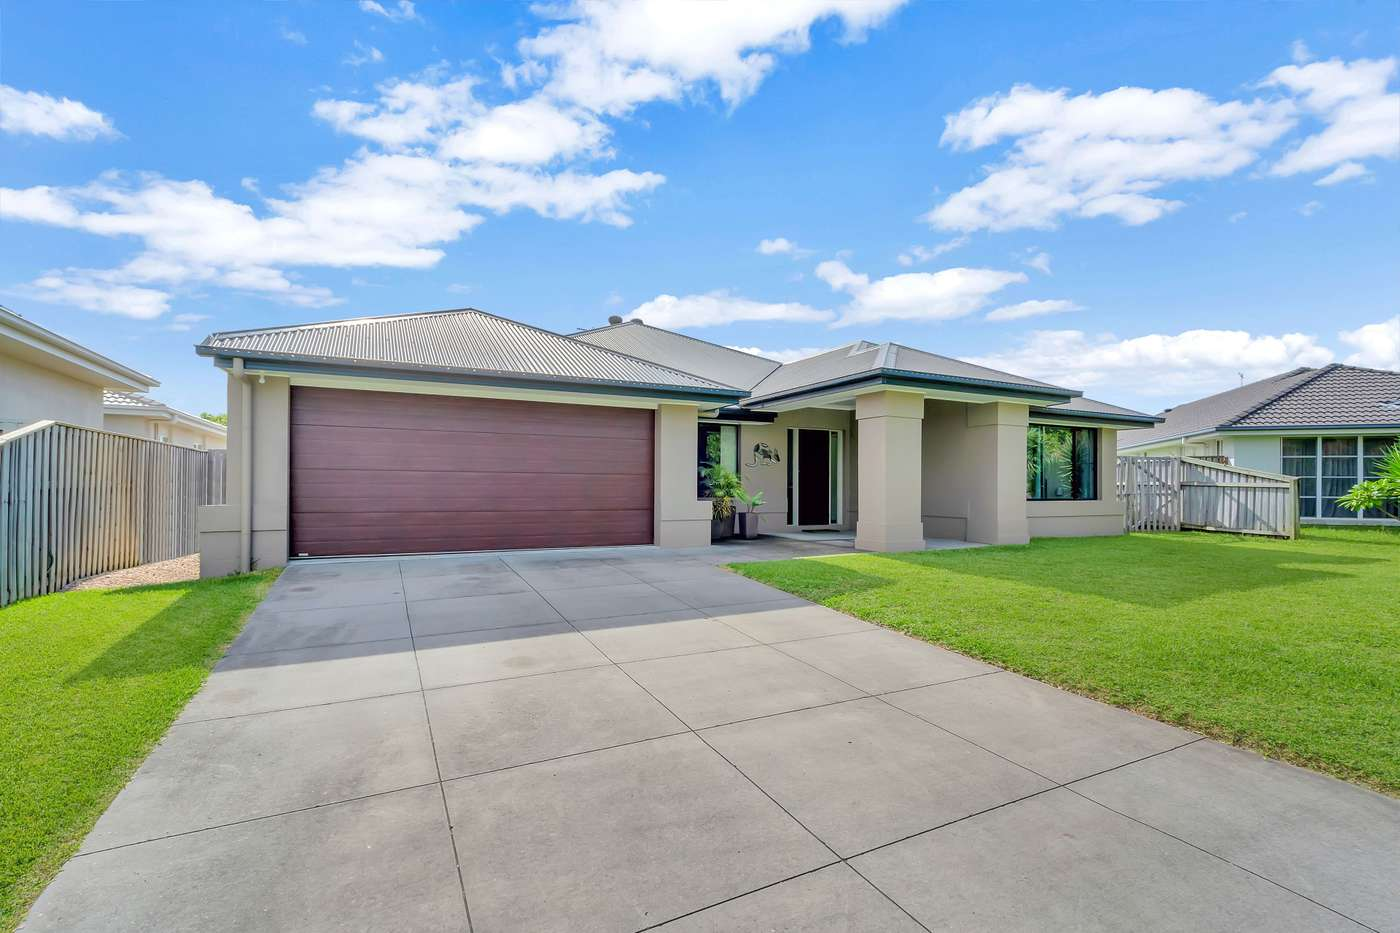 Main view of Homely house listing, 3 Lanier Close, Oxenford, QLD 4210